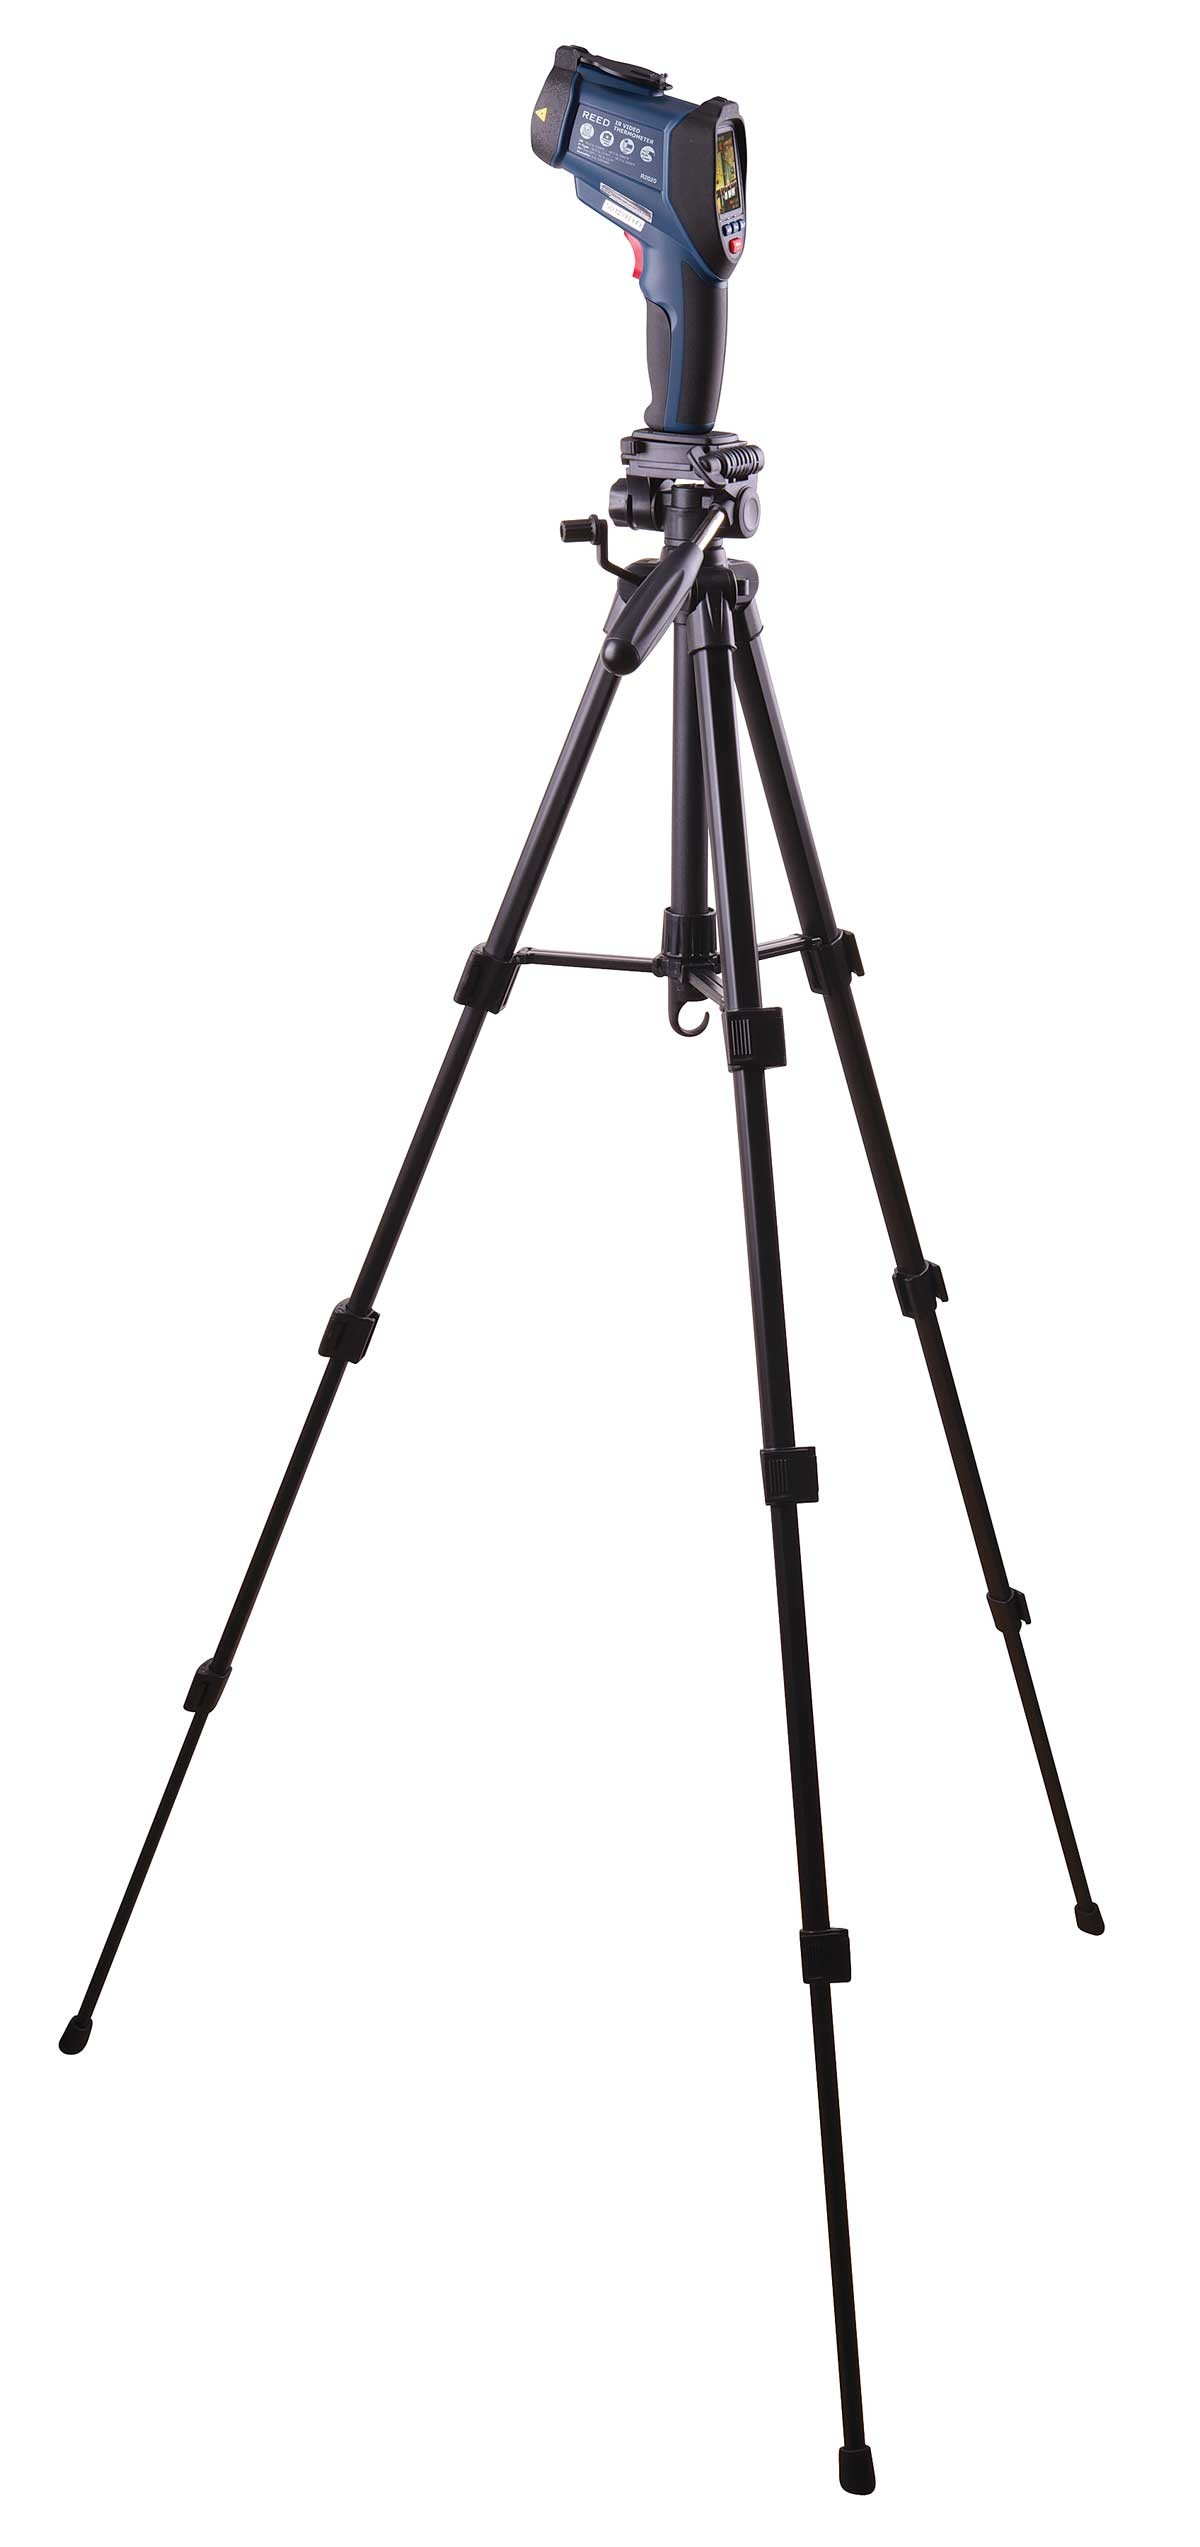 REED R1500 Lightweight Tripod with Instrument Adapter-REED R1500 3